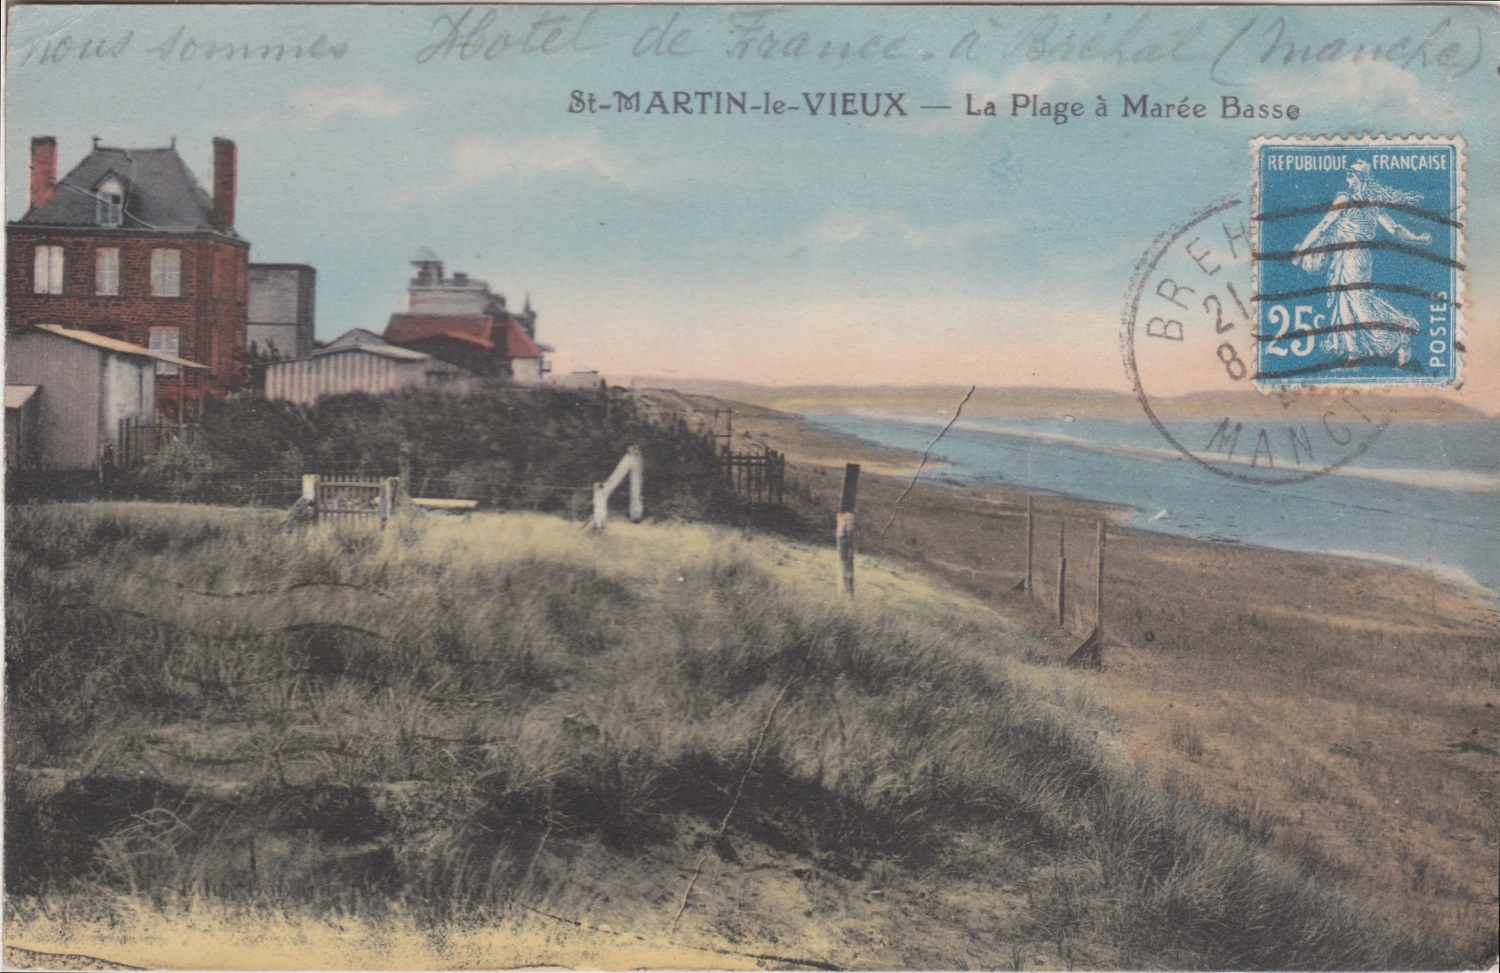 1950 St Martin Littoral Villas © collection Jean Claude Ferret